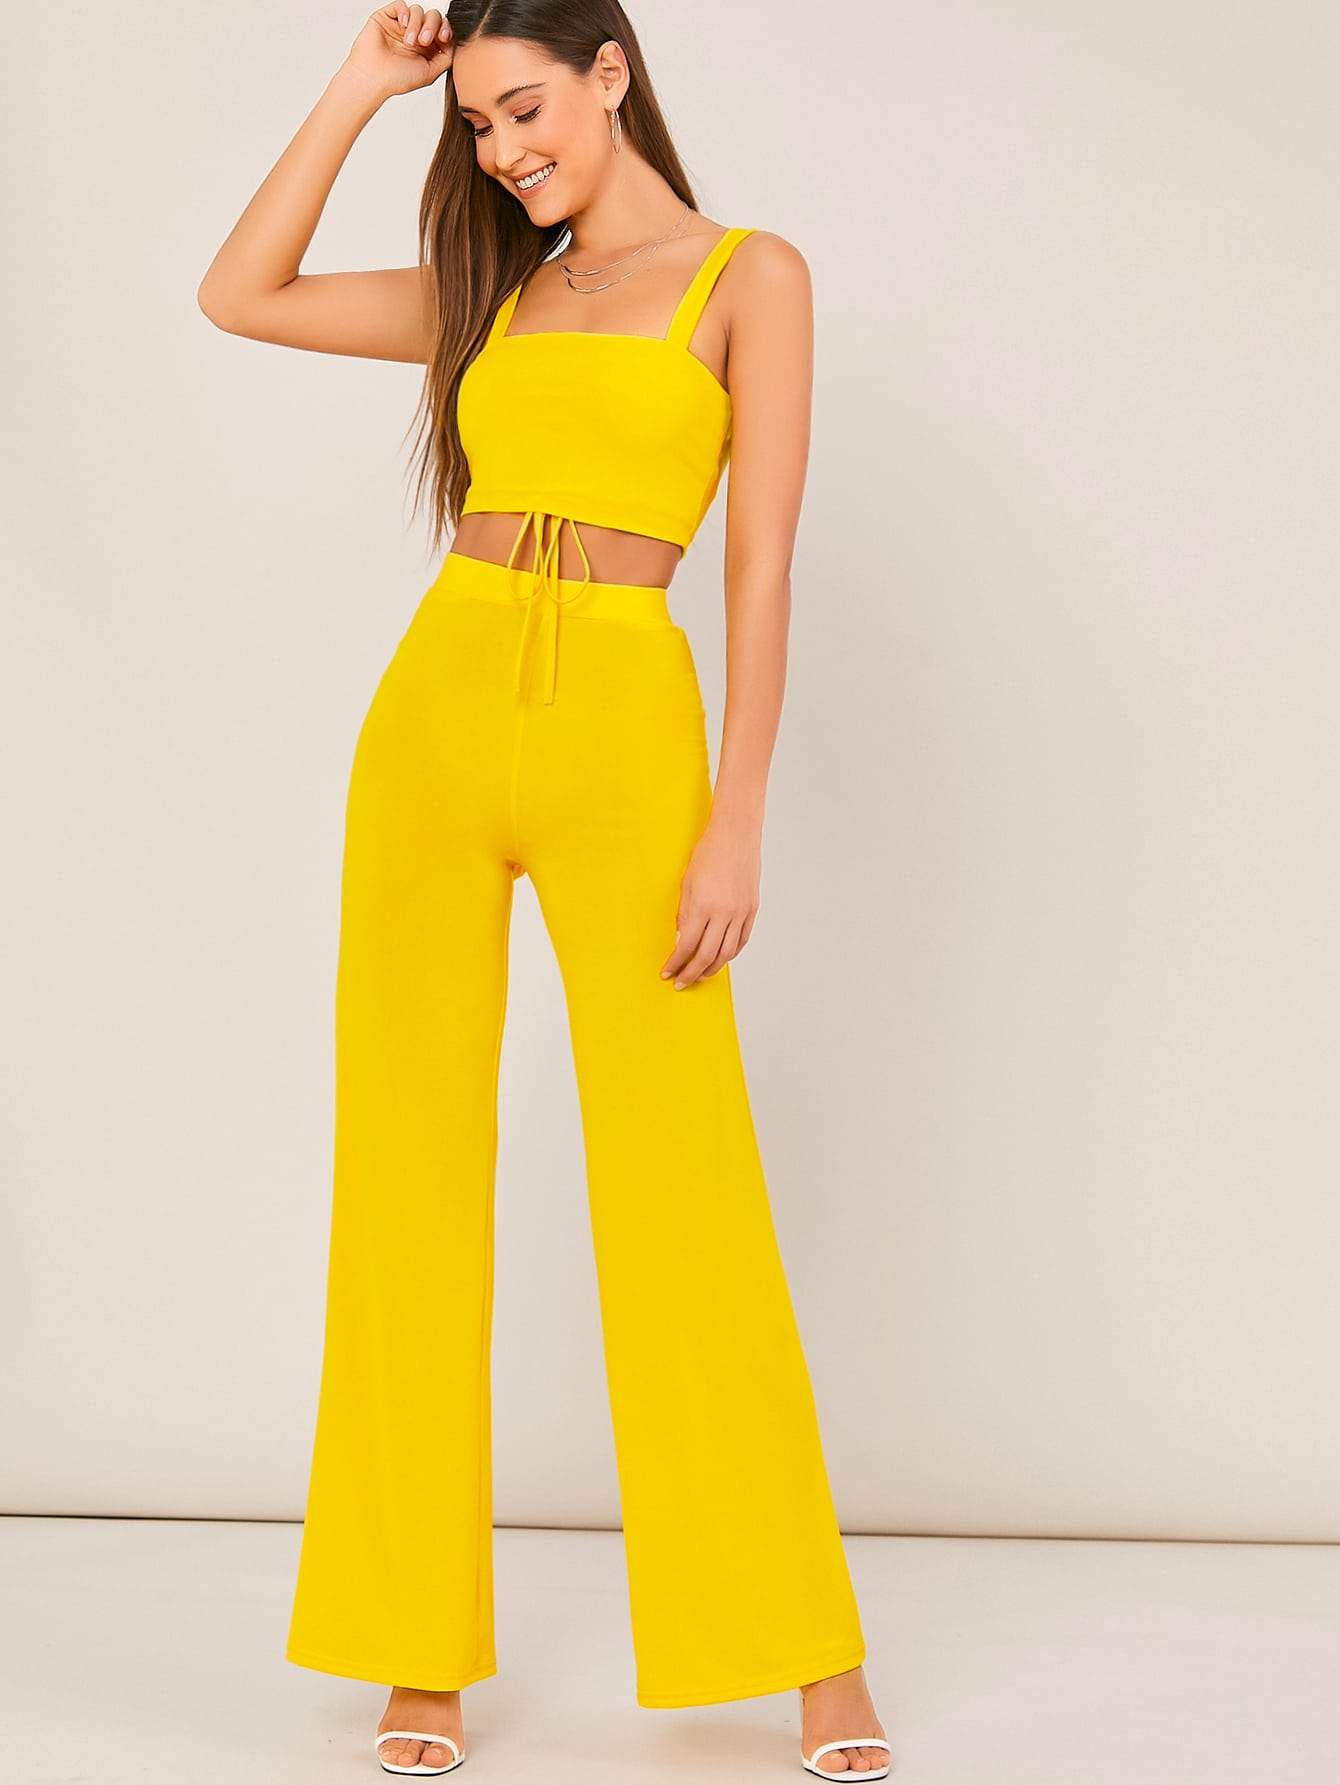 Knot Back Crop Top & Flare Leg Pants Set - FLJ CORPORATIONS